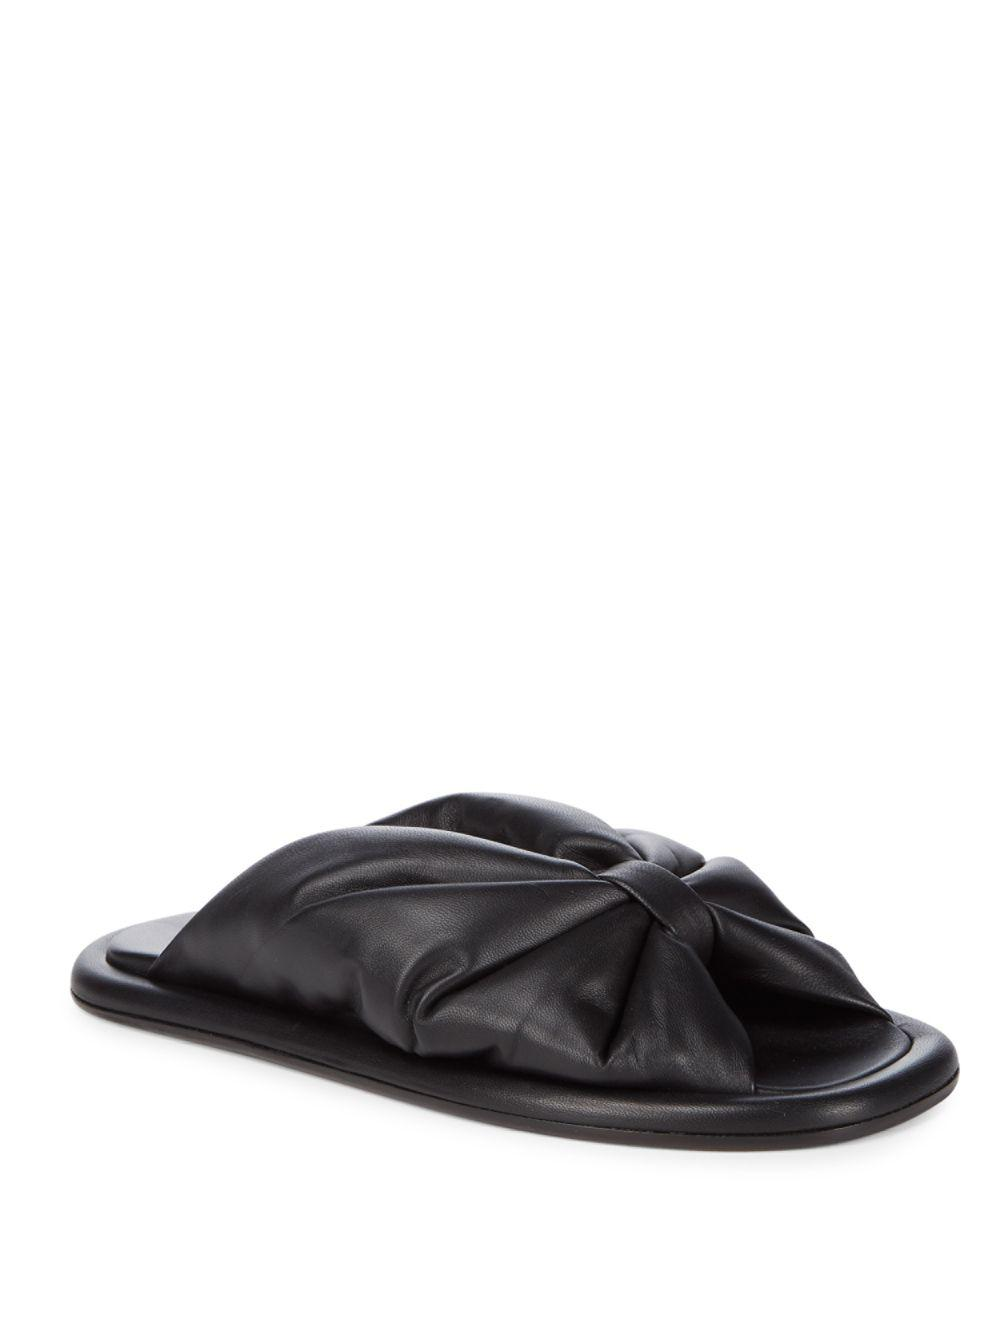 Balenciaga Leather Bow Slippers in